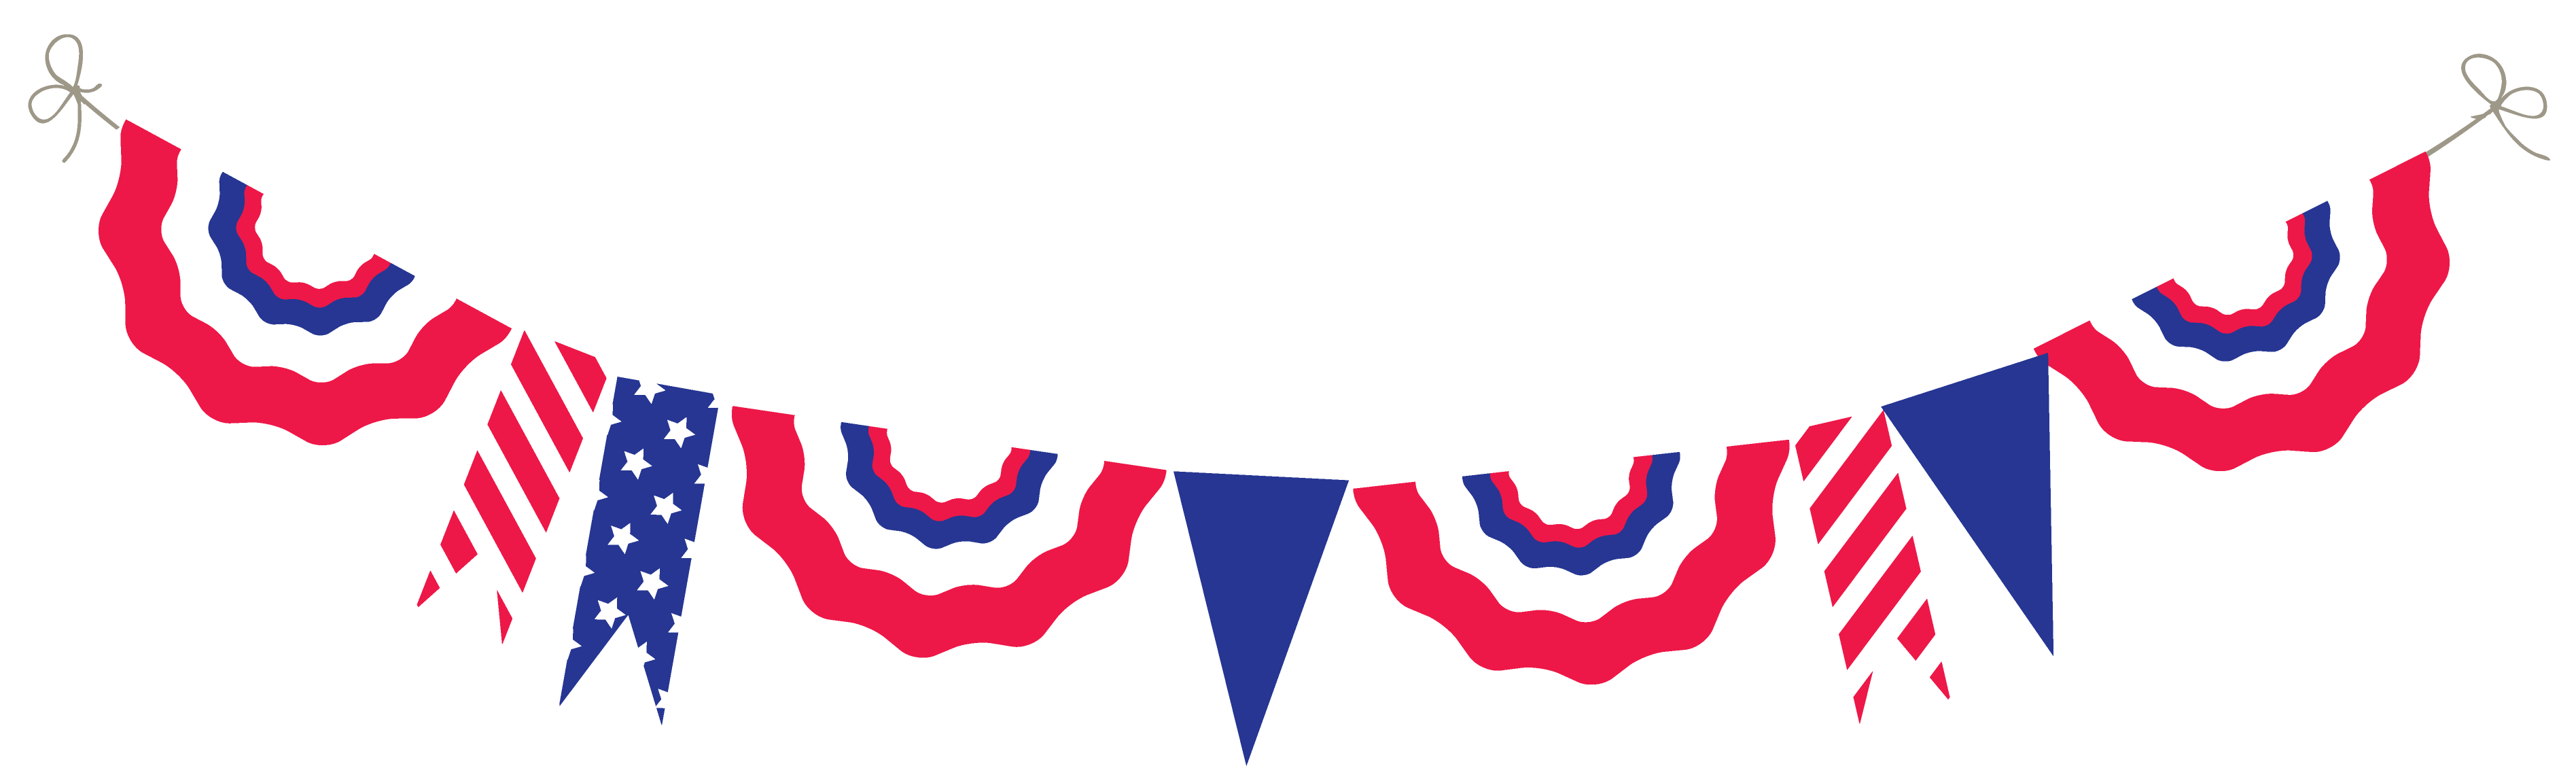 Patriotic Banner Clipart | Free download on ClipArtMag